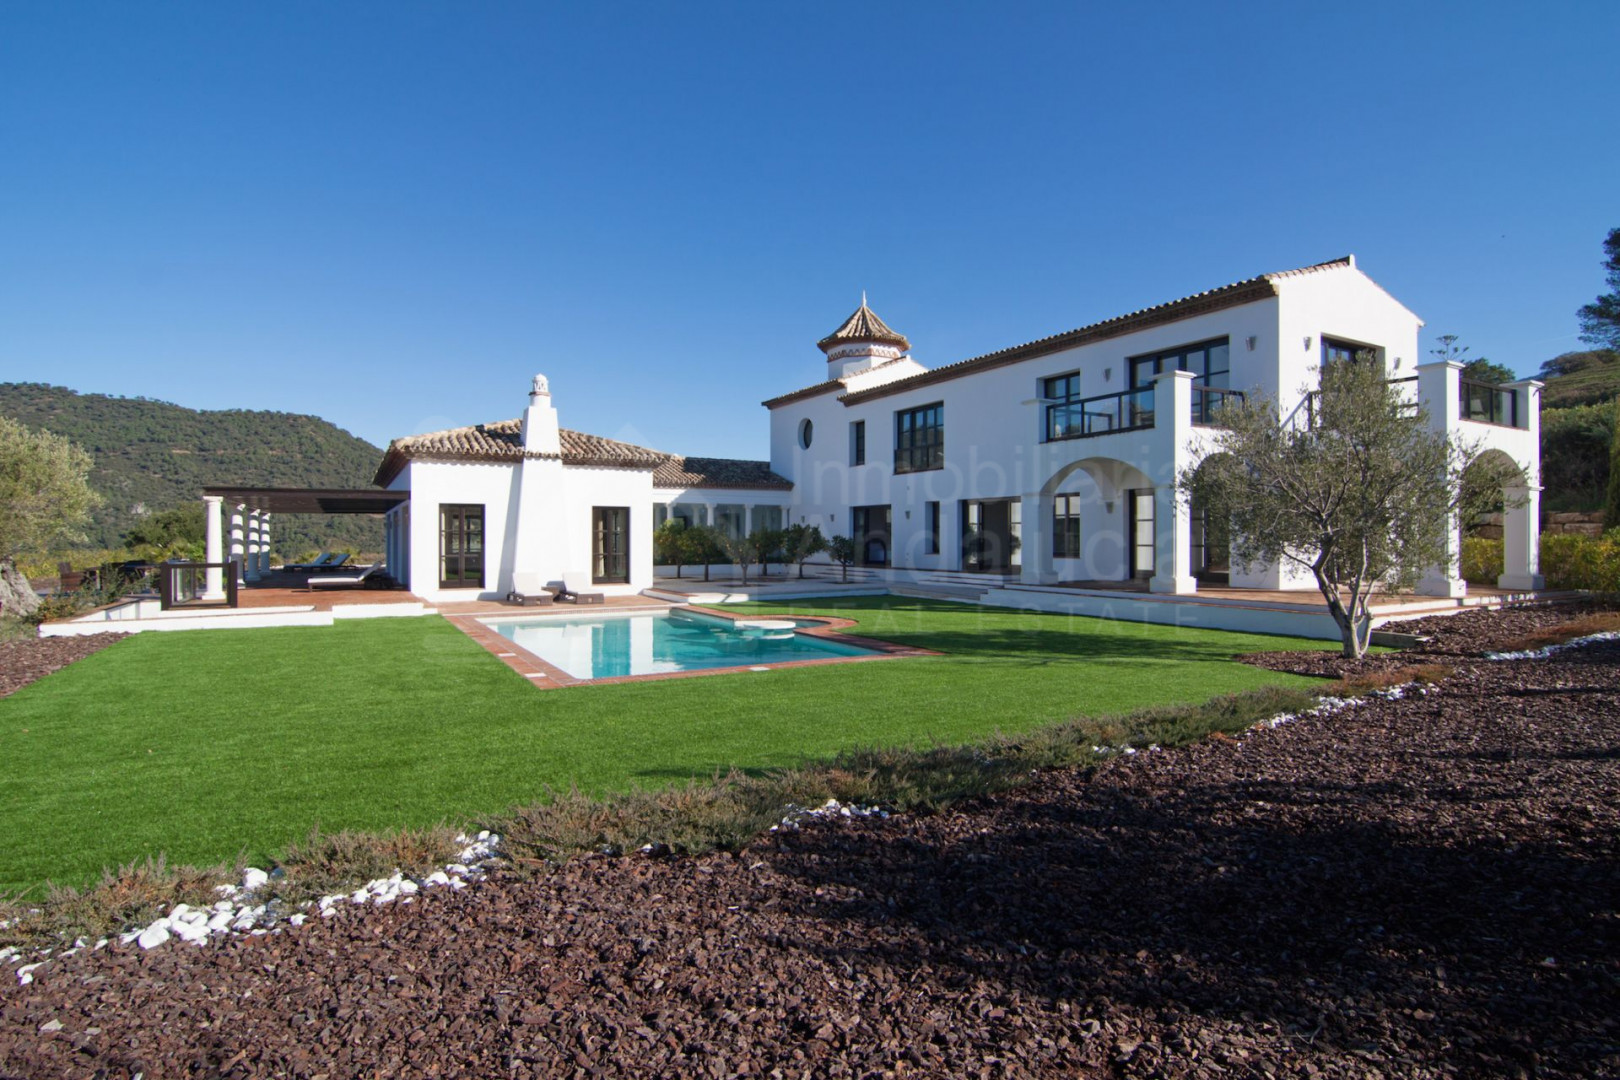 Spectacular new country villa ideal for horses for sale between Casares and Gaucin